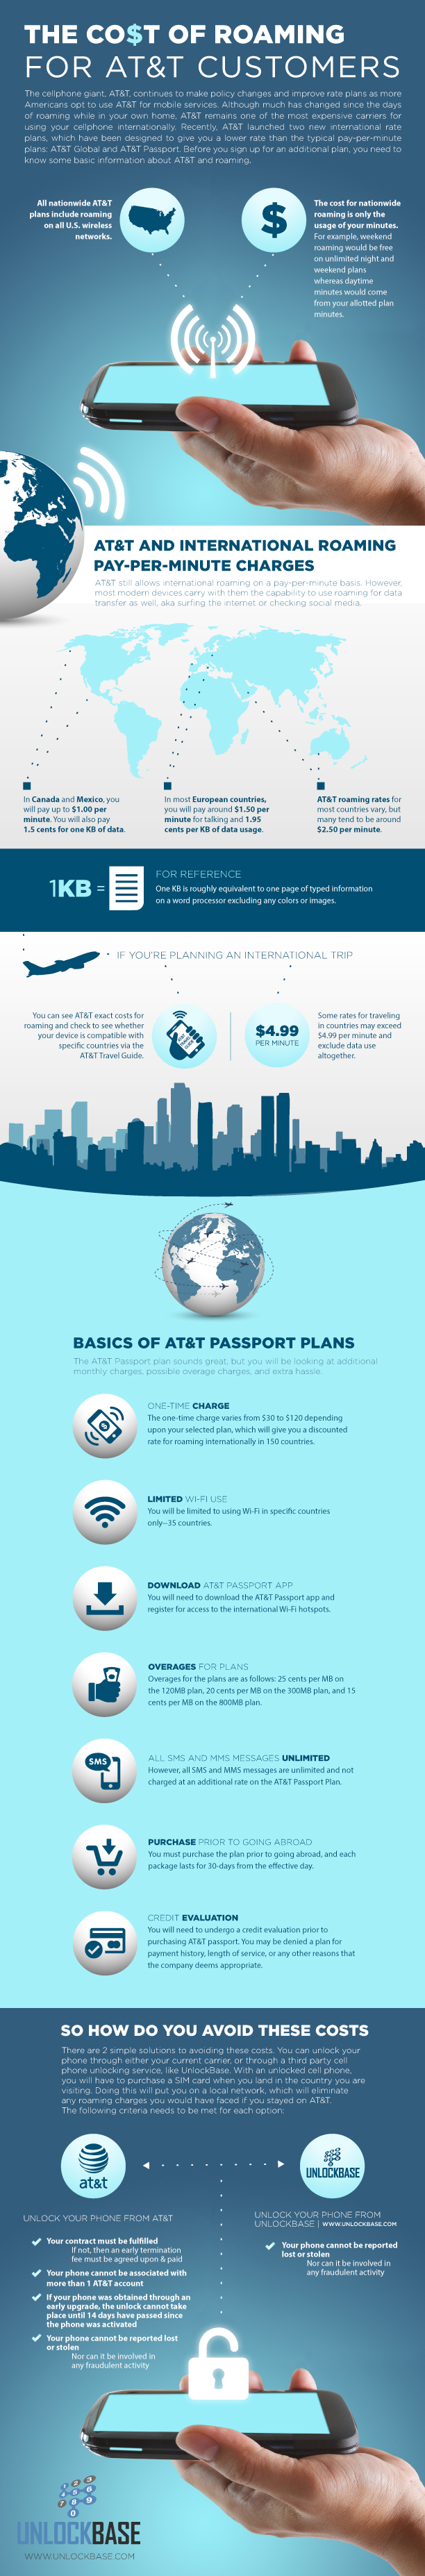 Infographic | Avoid AT&T Roaming Costs by Unlocking Cell Phone